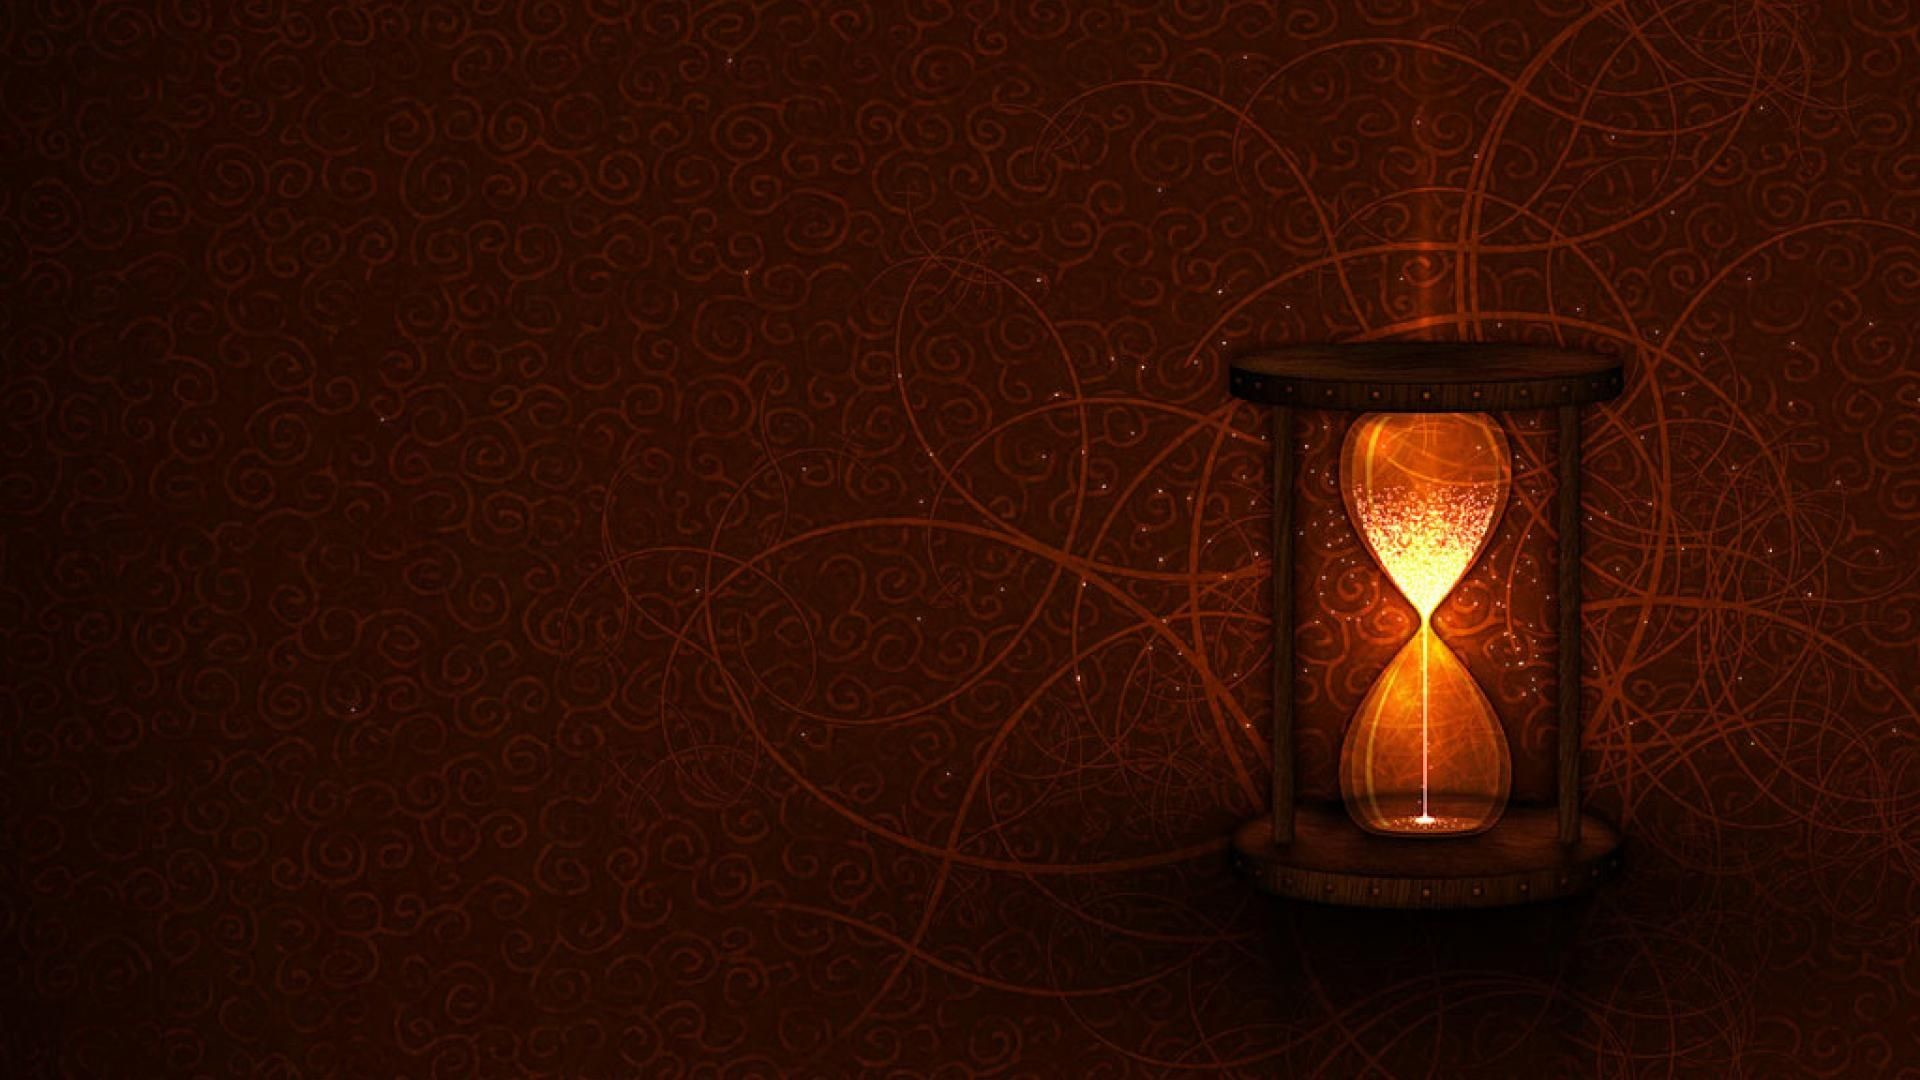 Res: 1920x1080, Hourglass Wallpapers, HDQ Hourglass Backgrounds #535QF